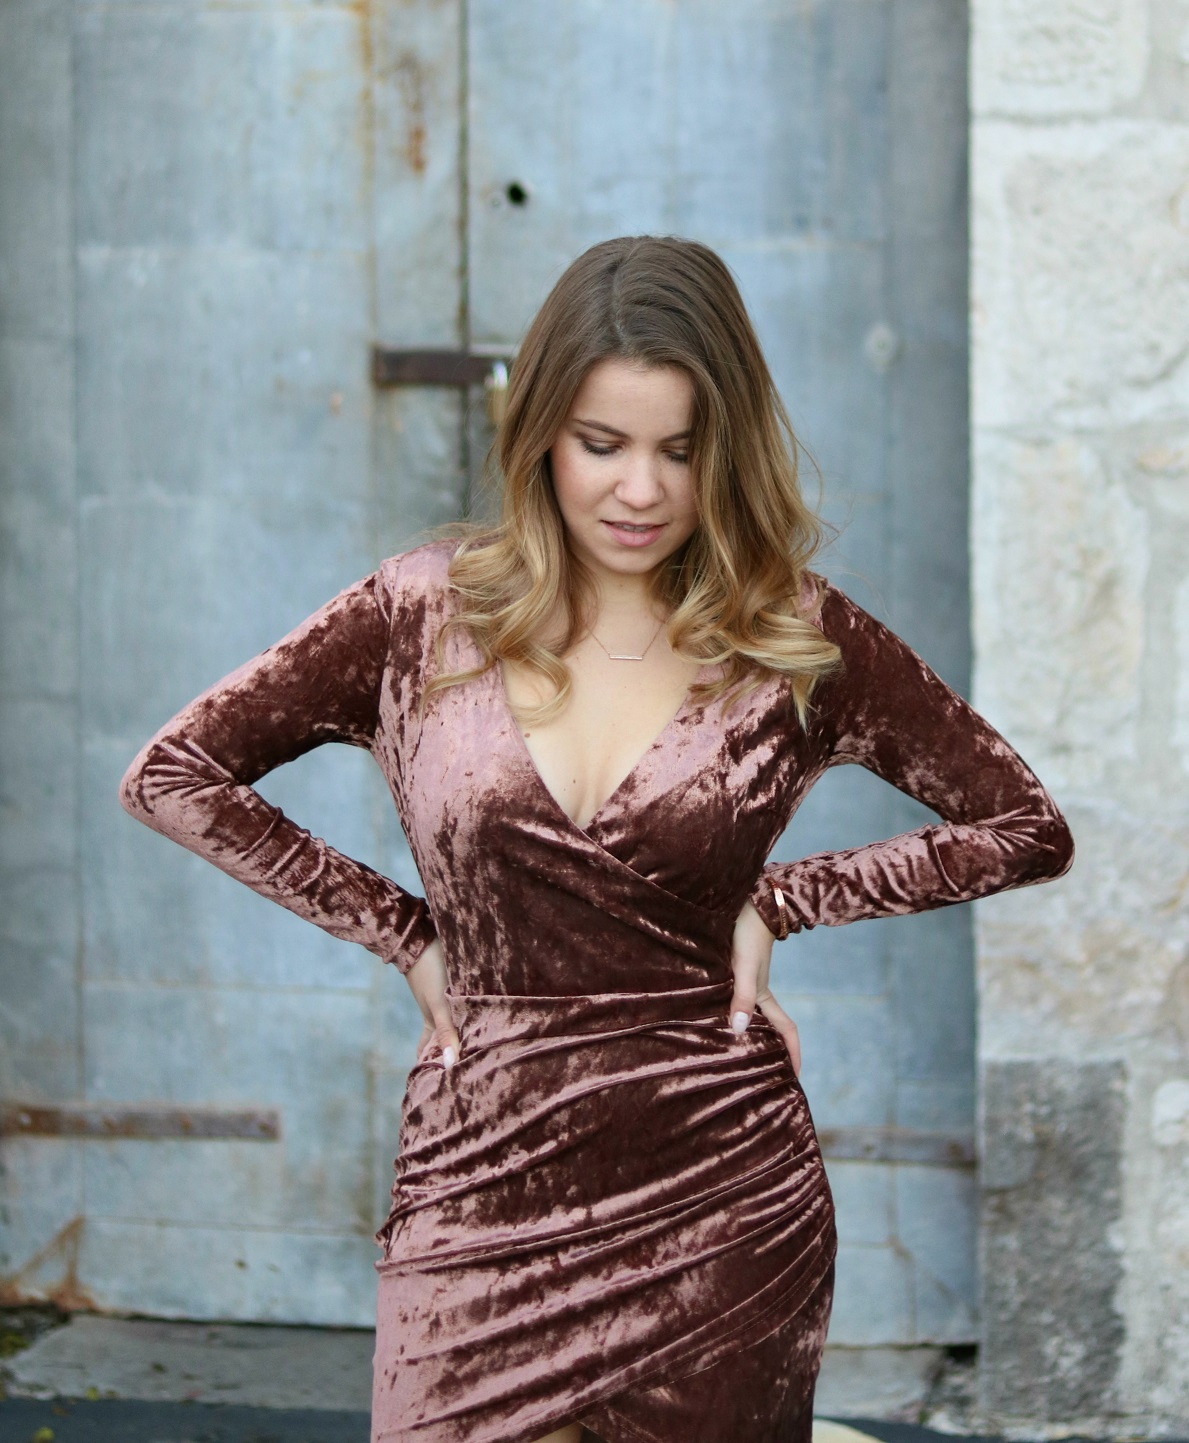 boho-lifestyle-napa-ca-crushed-velvet-dress